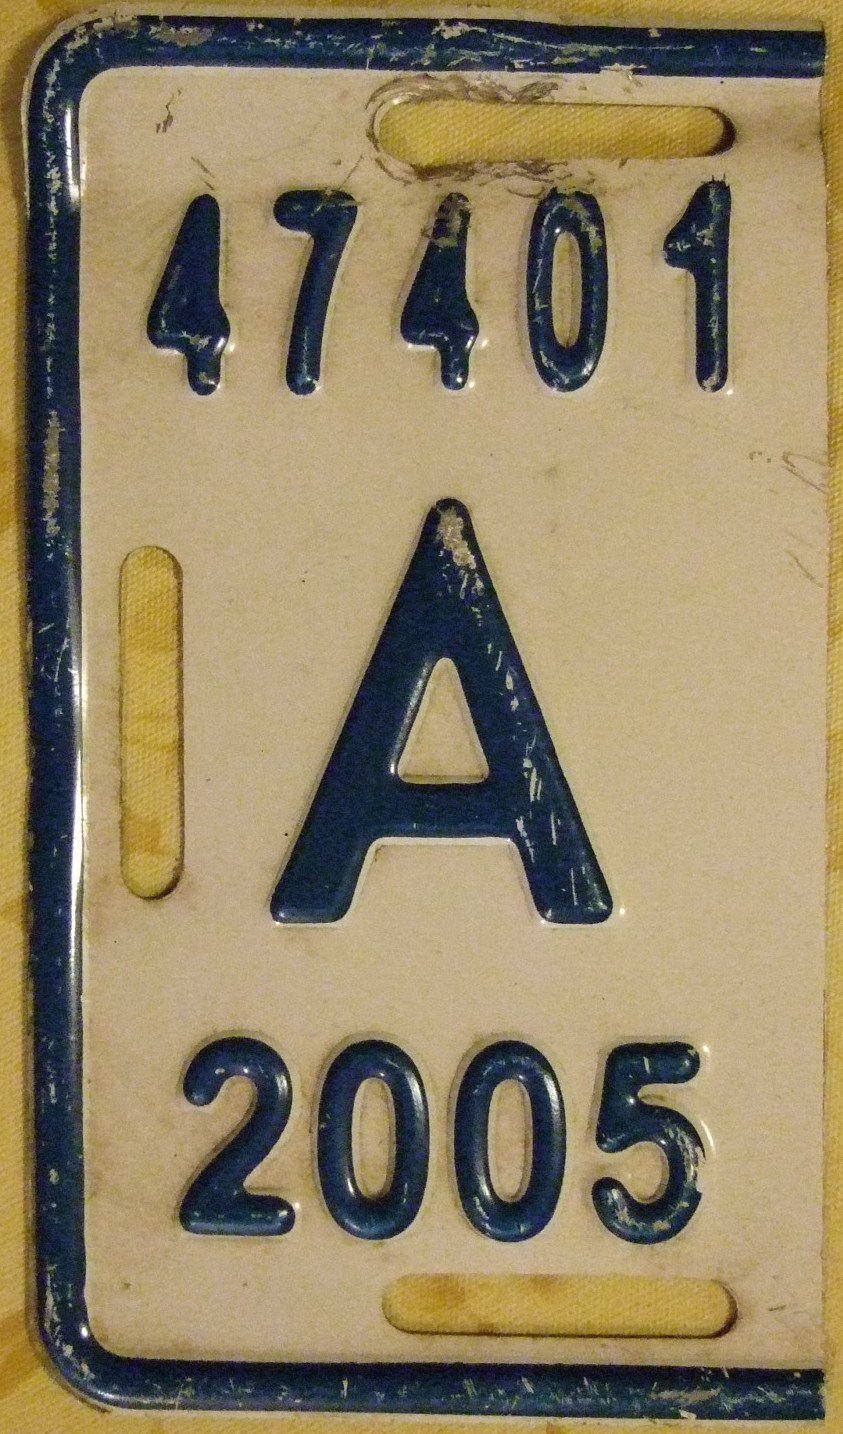 File:ARUBA 2005 -HALF YEAR LICENSE PLATE TAB - Flickr - woody1778a ...